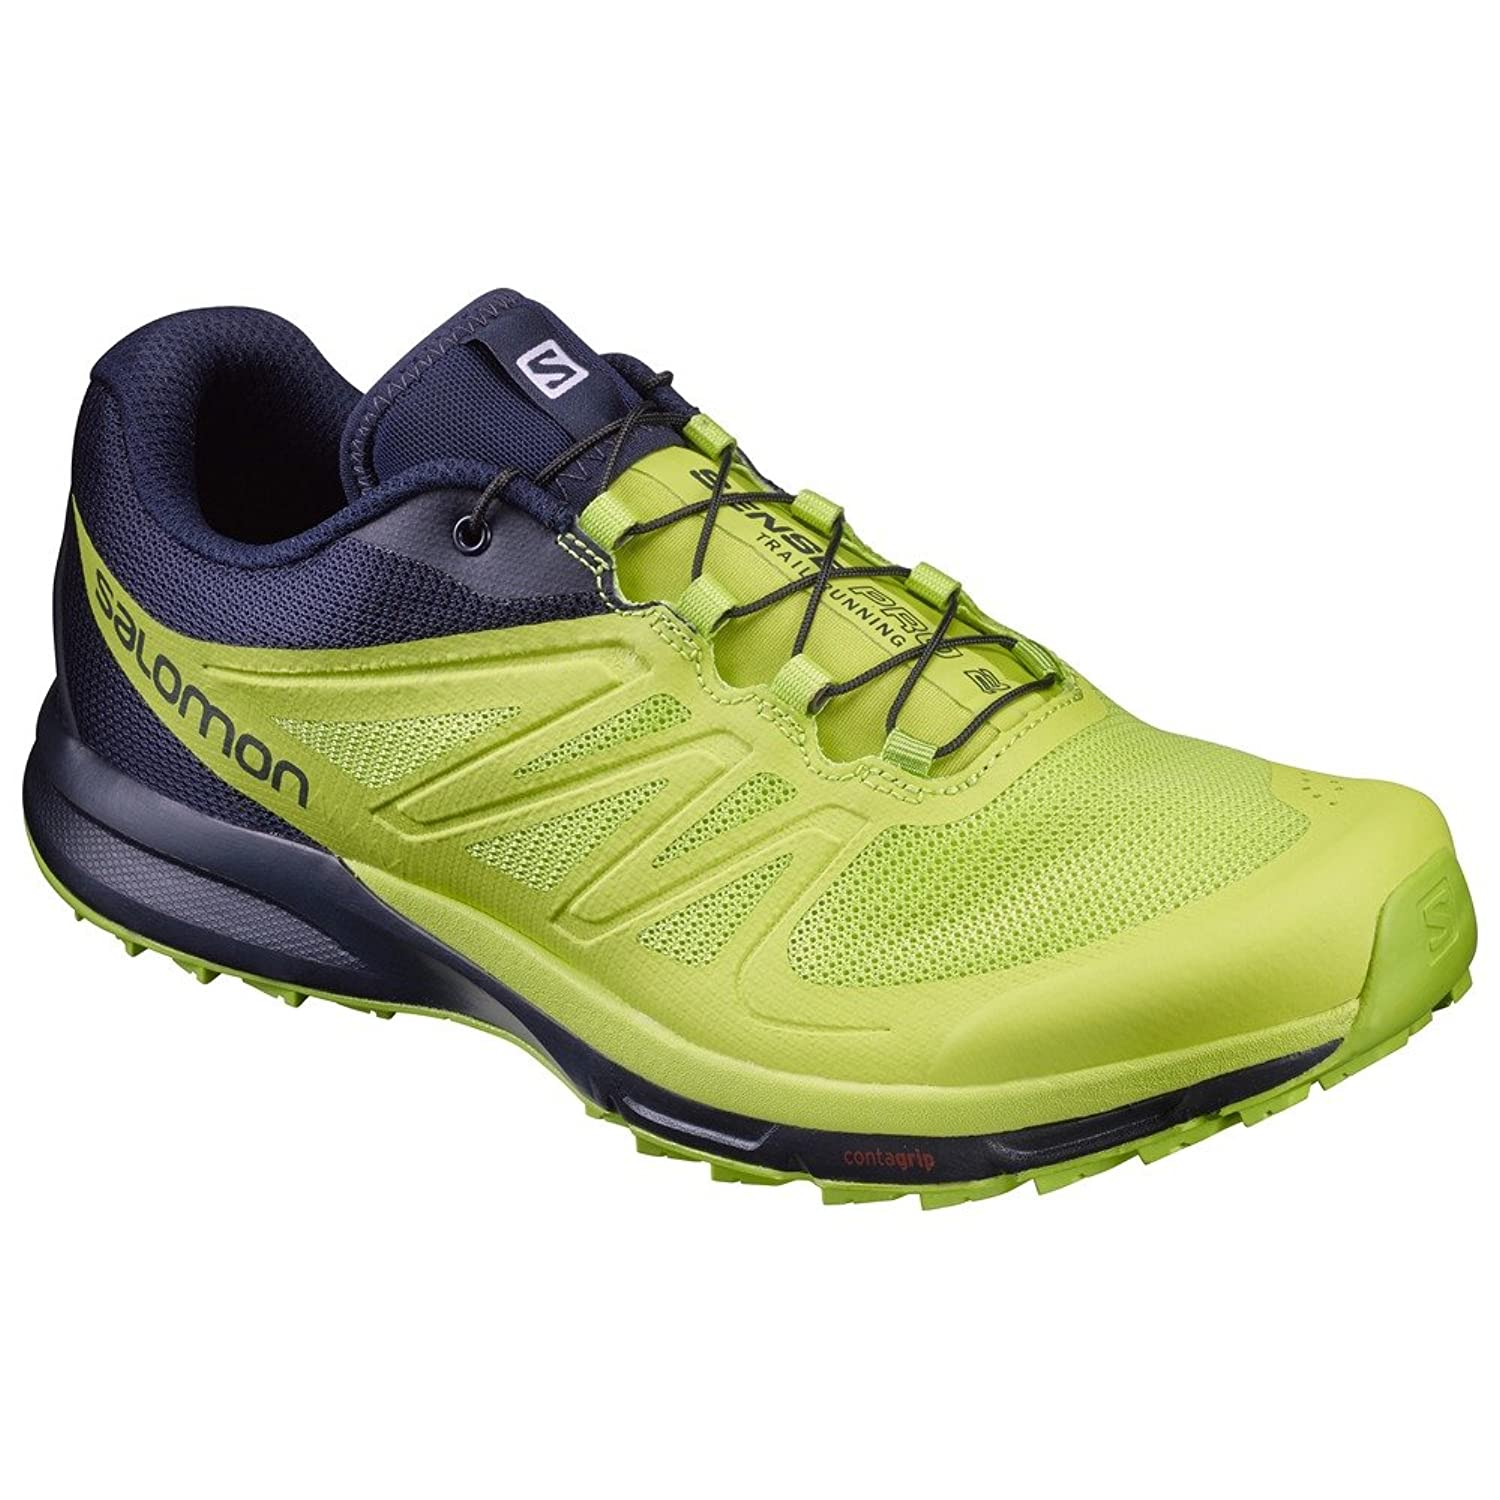 Salomon Men's Sense Pro 2 Shoes & Quicklace Bundle